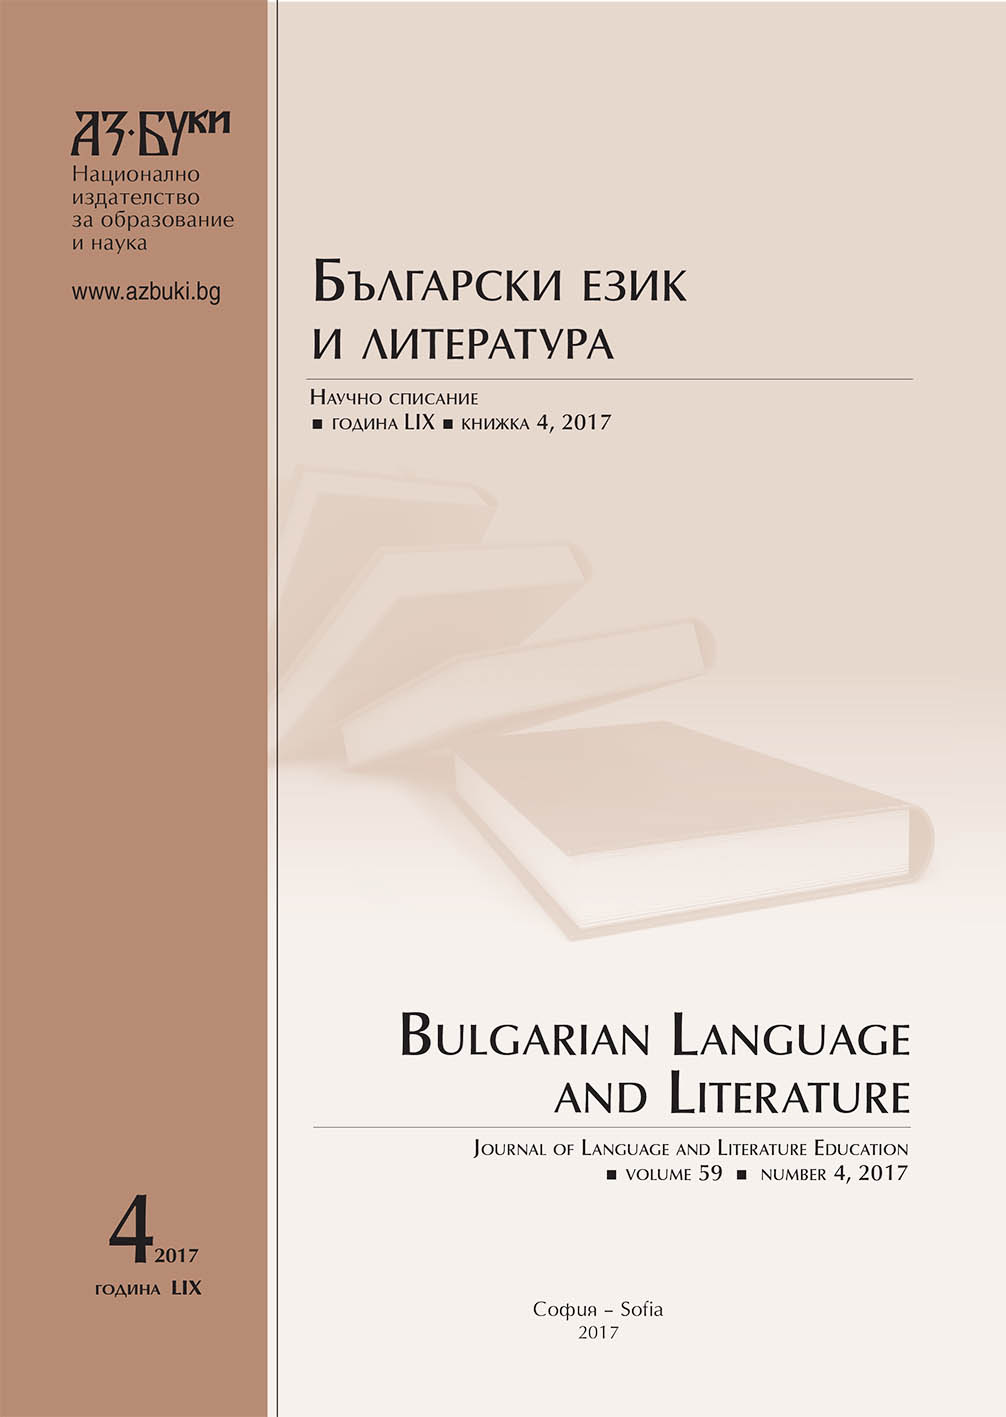 Functional Grammar of M. Halliday for Identifying the Elements in Topic Position in Bulgarian Sentence Cover Image